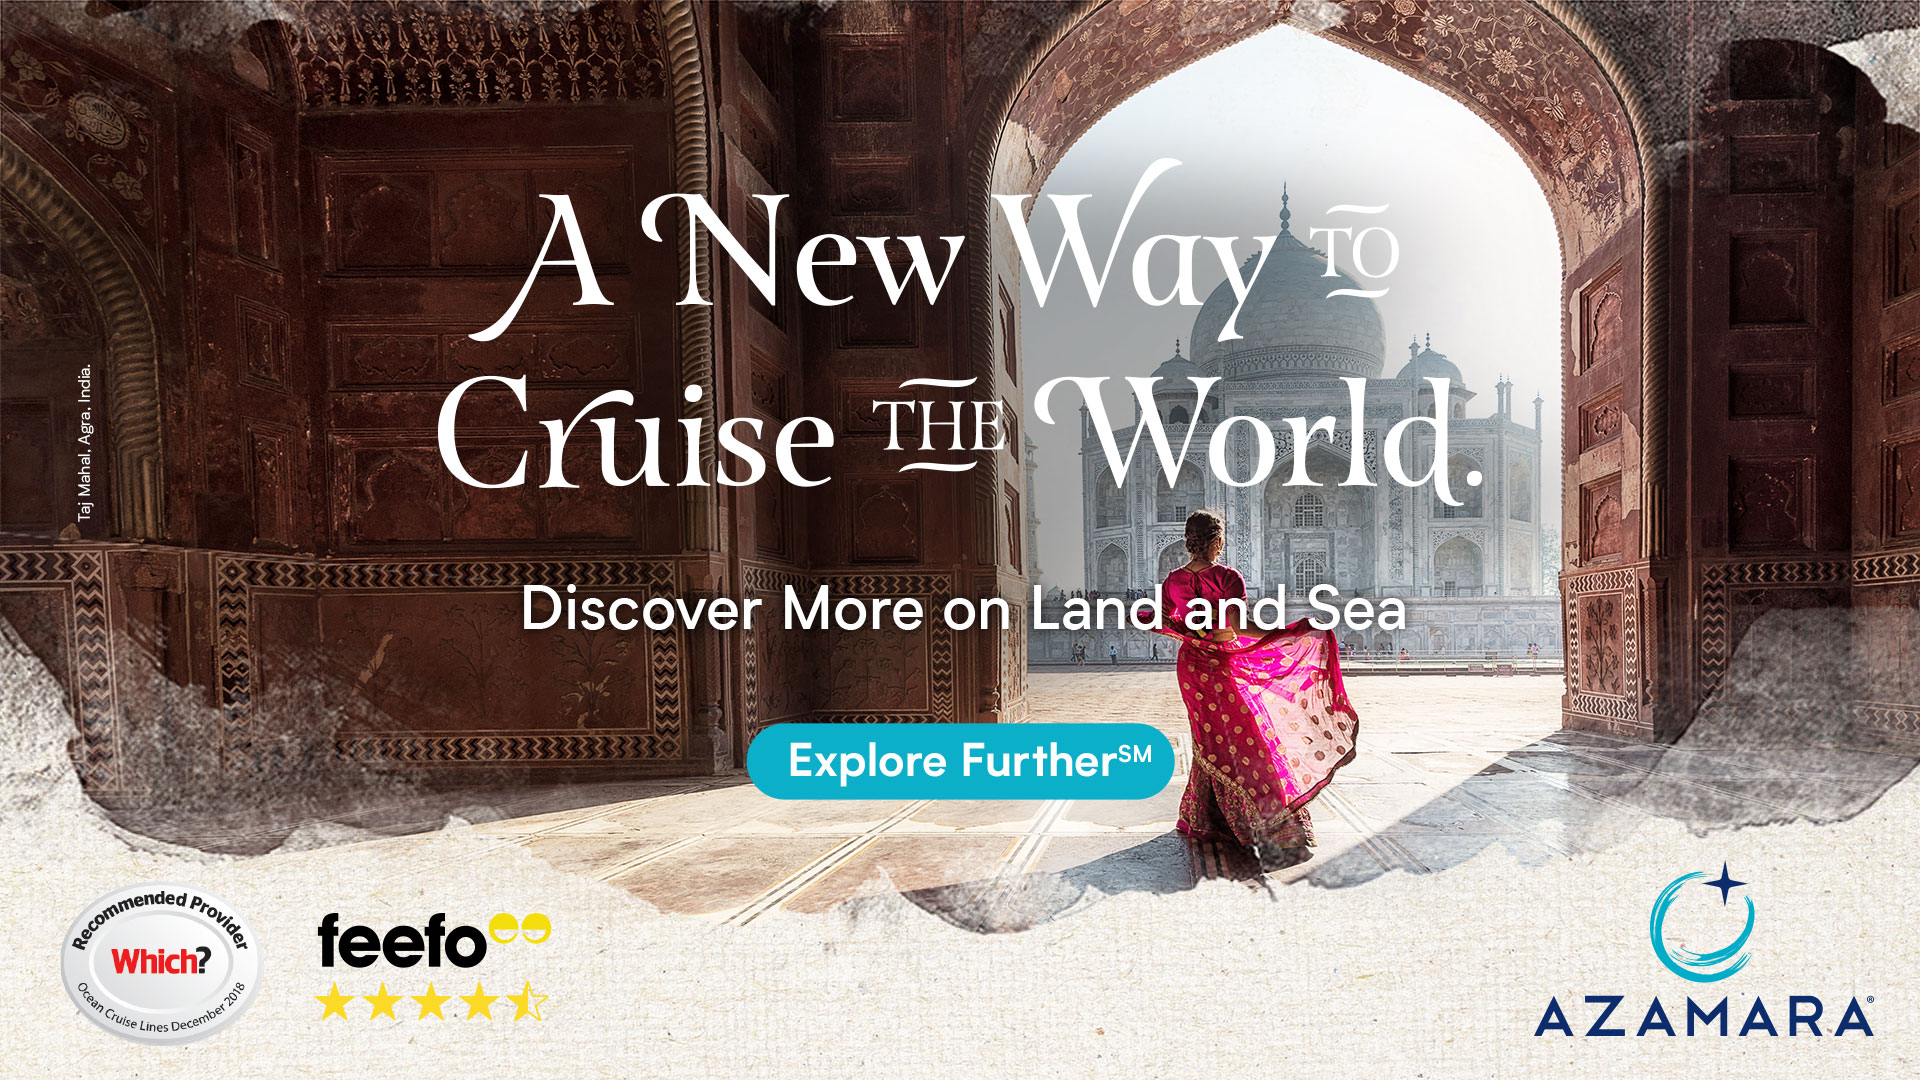 A New Way To Cruise The World